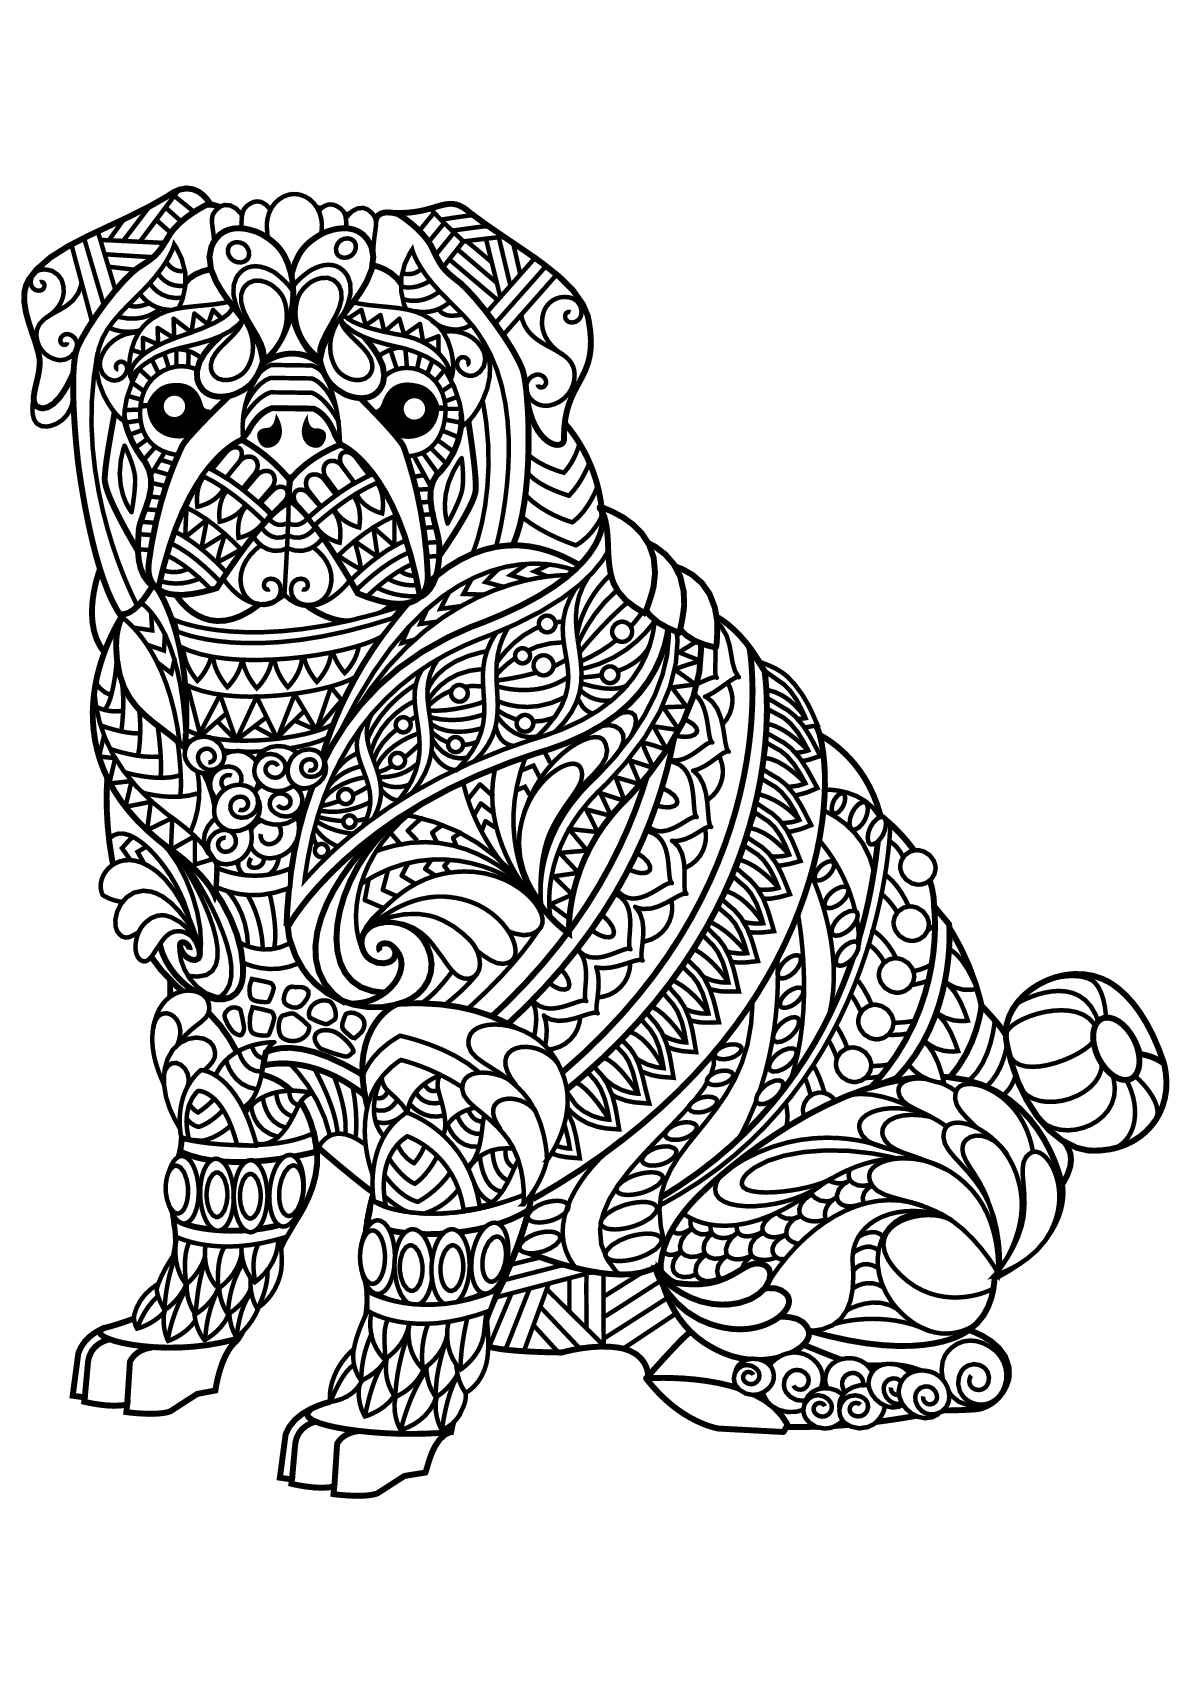 coloring pages for adults dogs dog coloring pages for adults best coloring pages for kids adults for coloring pages dogs